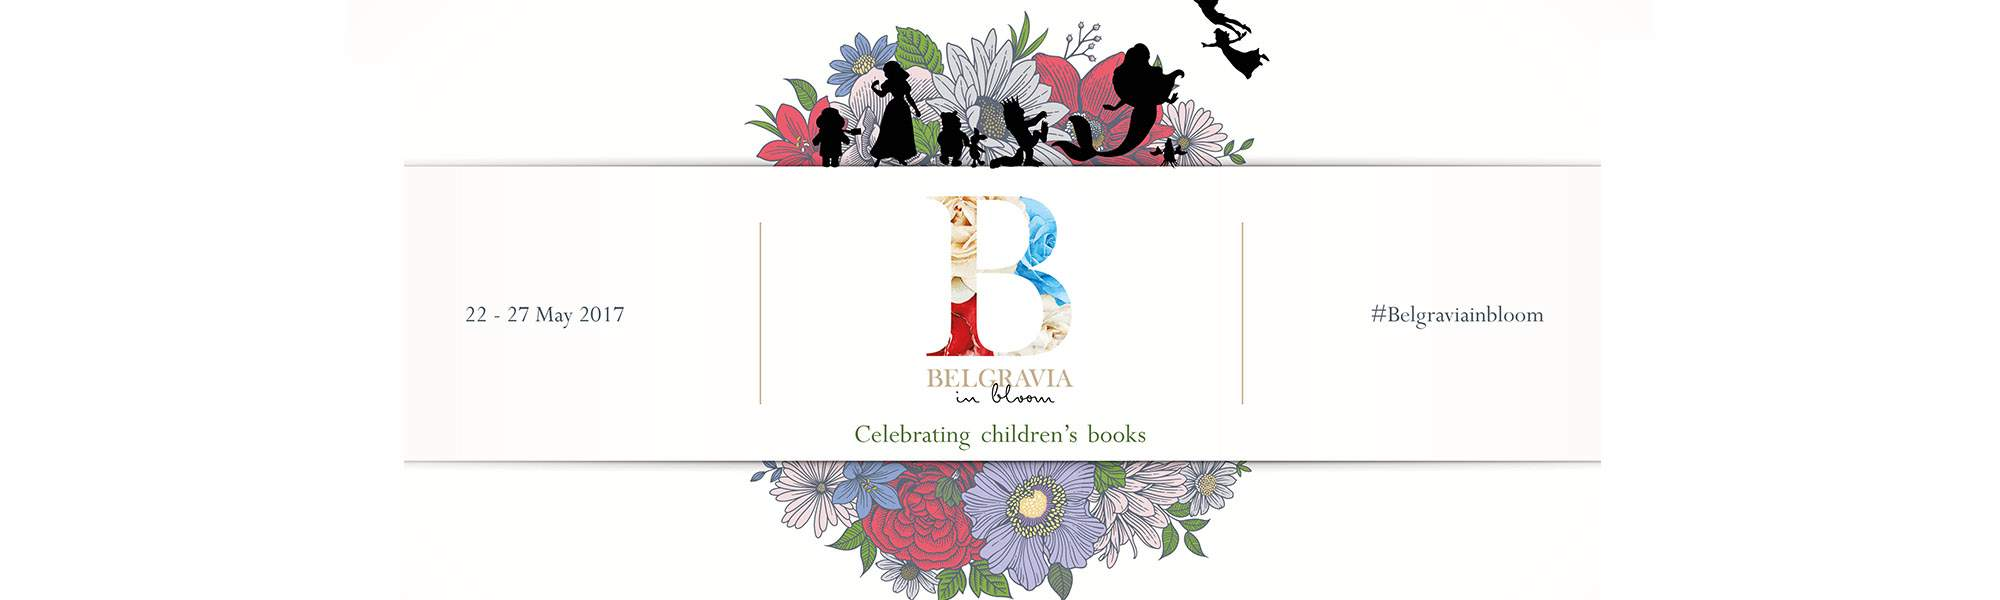 Little Bird Belgravia in Bloom 2017 - A Six Day Floral Festival Celebrating Children's Books